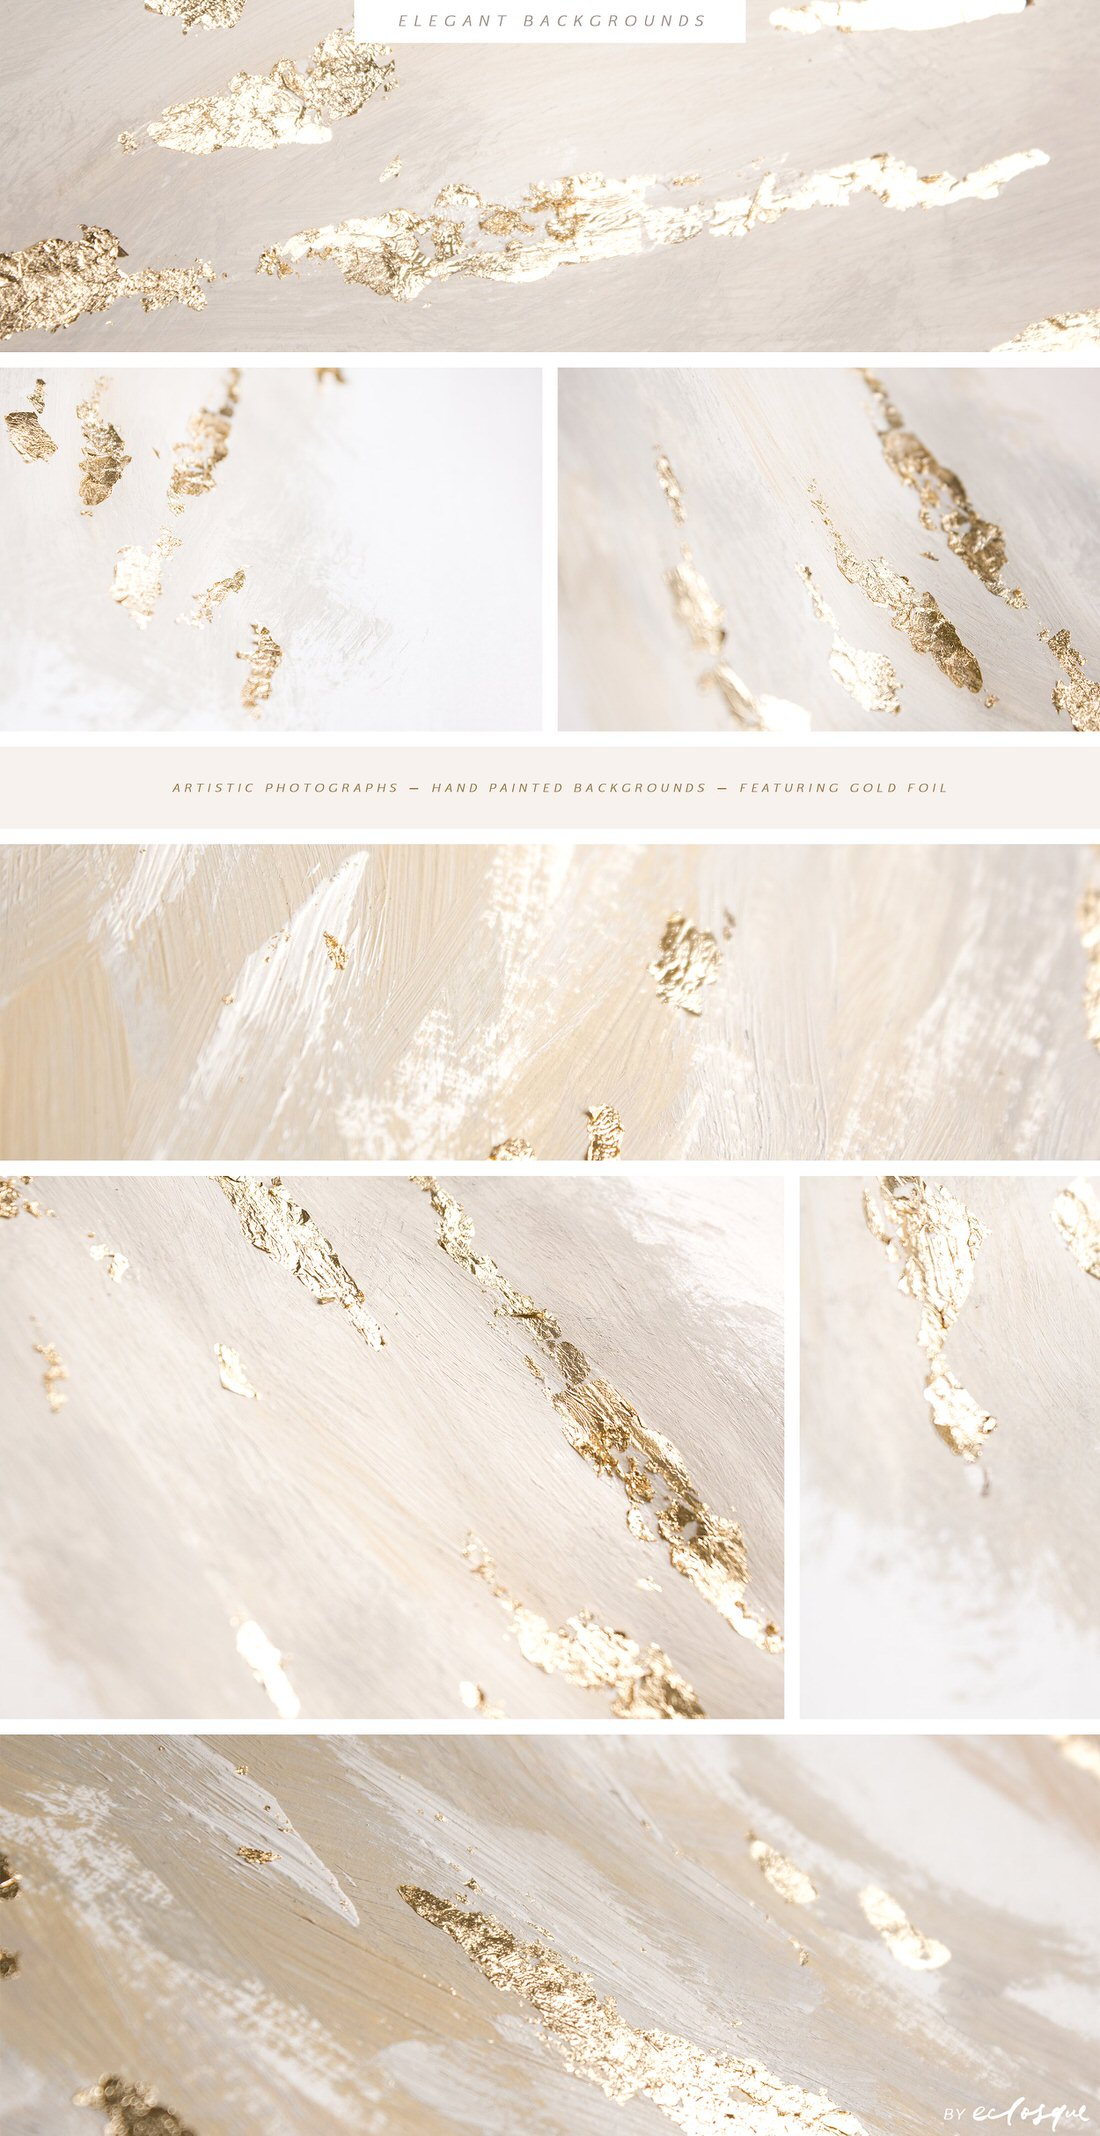 Elegant background images with gold foil and hand-painted brush strokes.